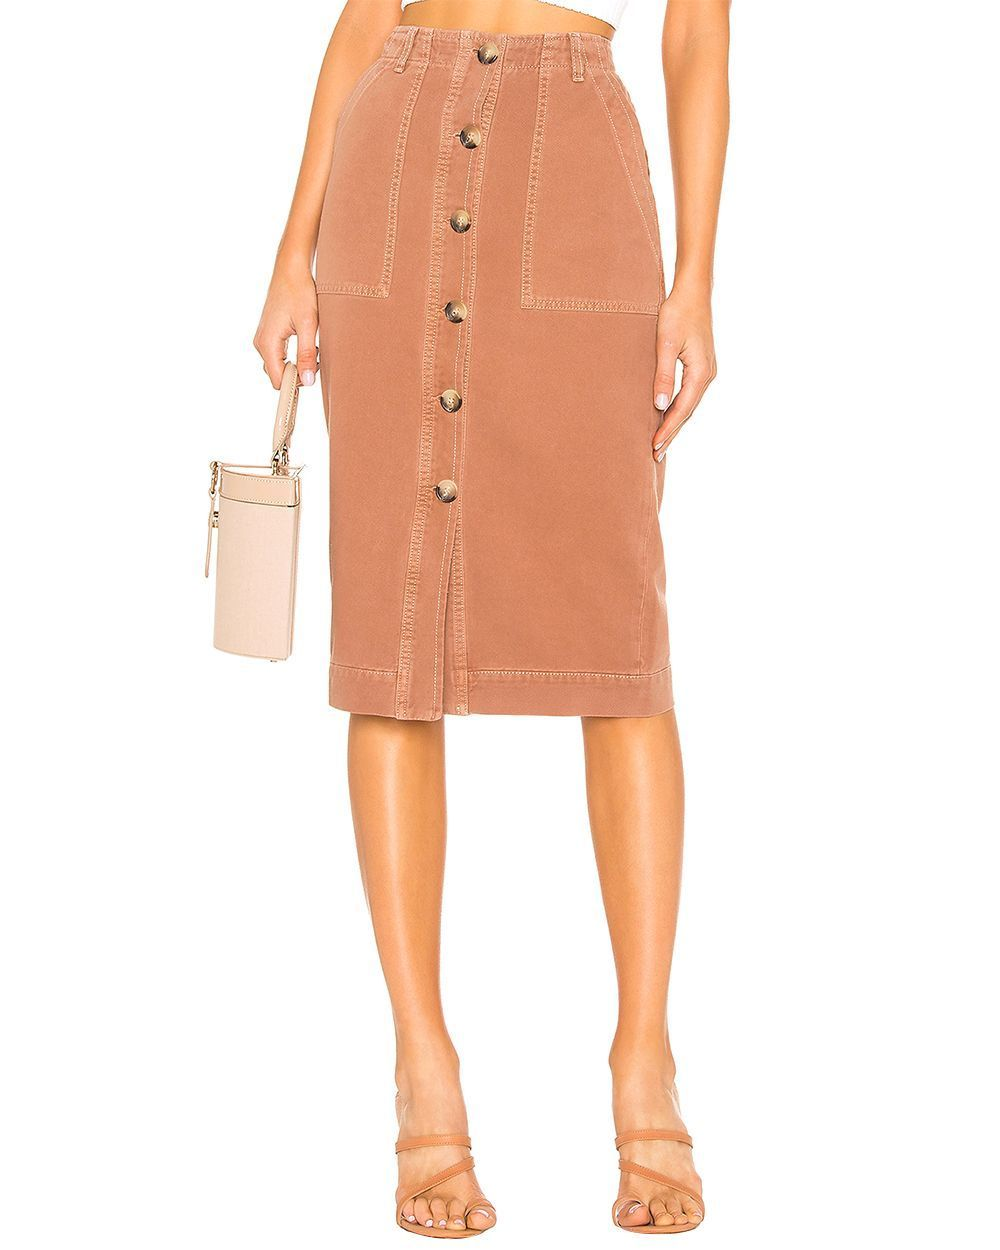 Free People Mid Length Utility Brown Skirt 2 Buy Clothing Online Best Price And Offers Ksa Hnak Com